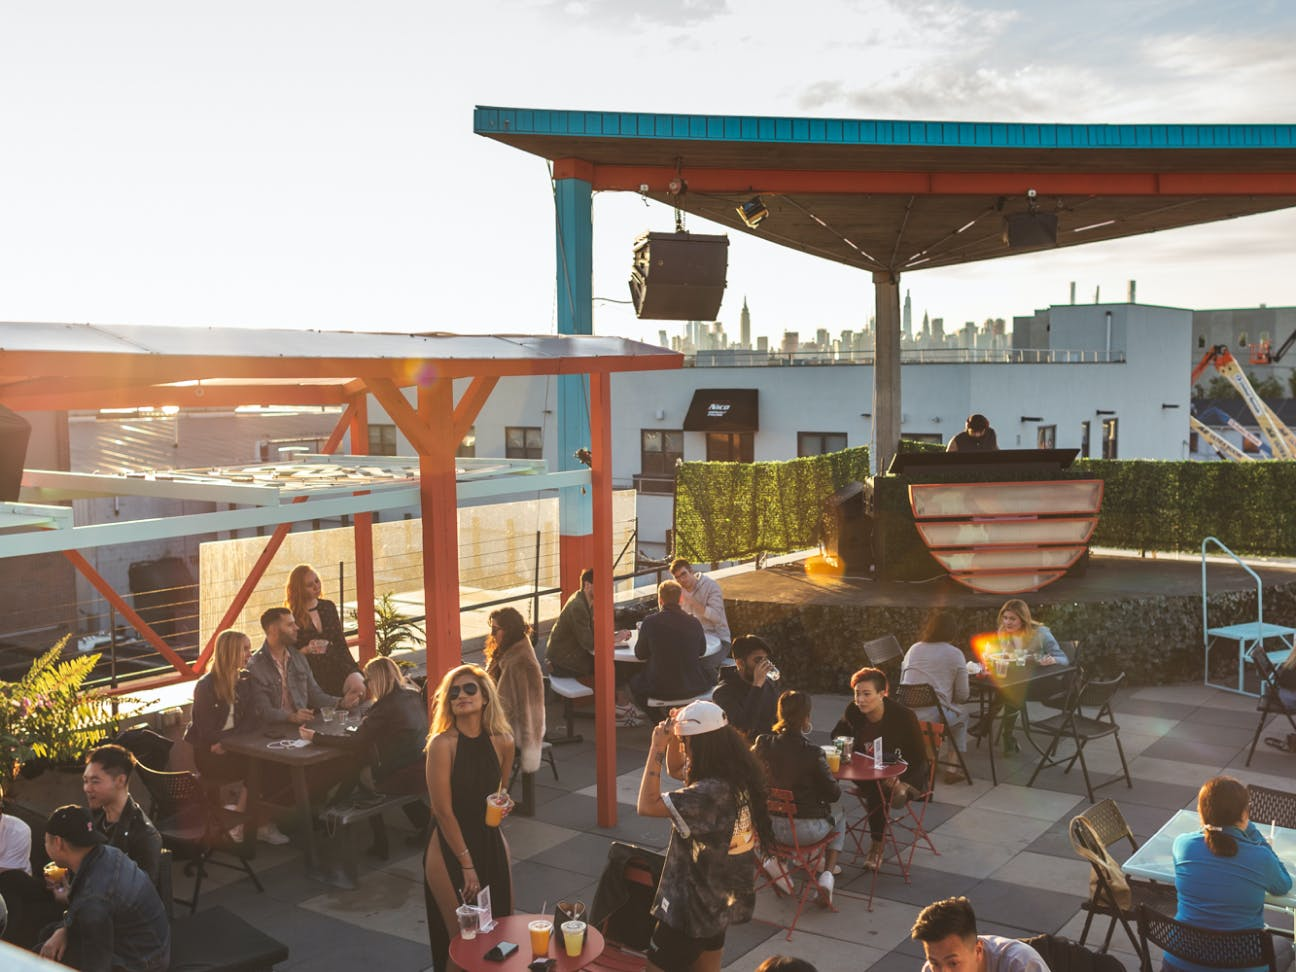 Groups sitting at tables on the rooftop with New York city skyline in the horizon